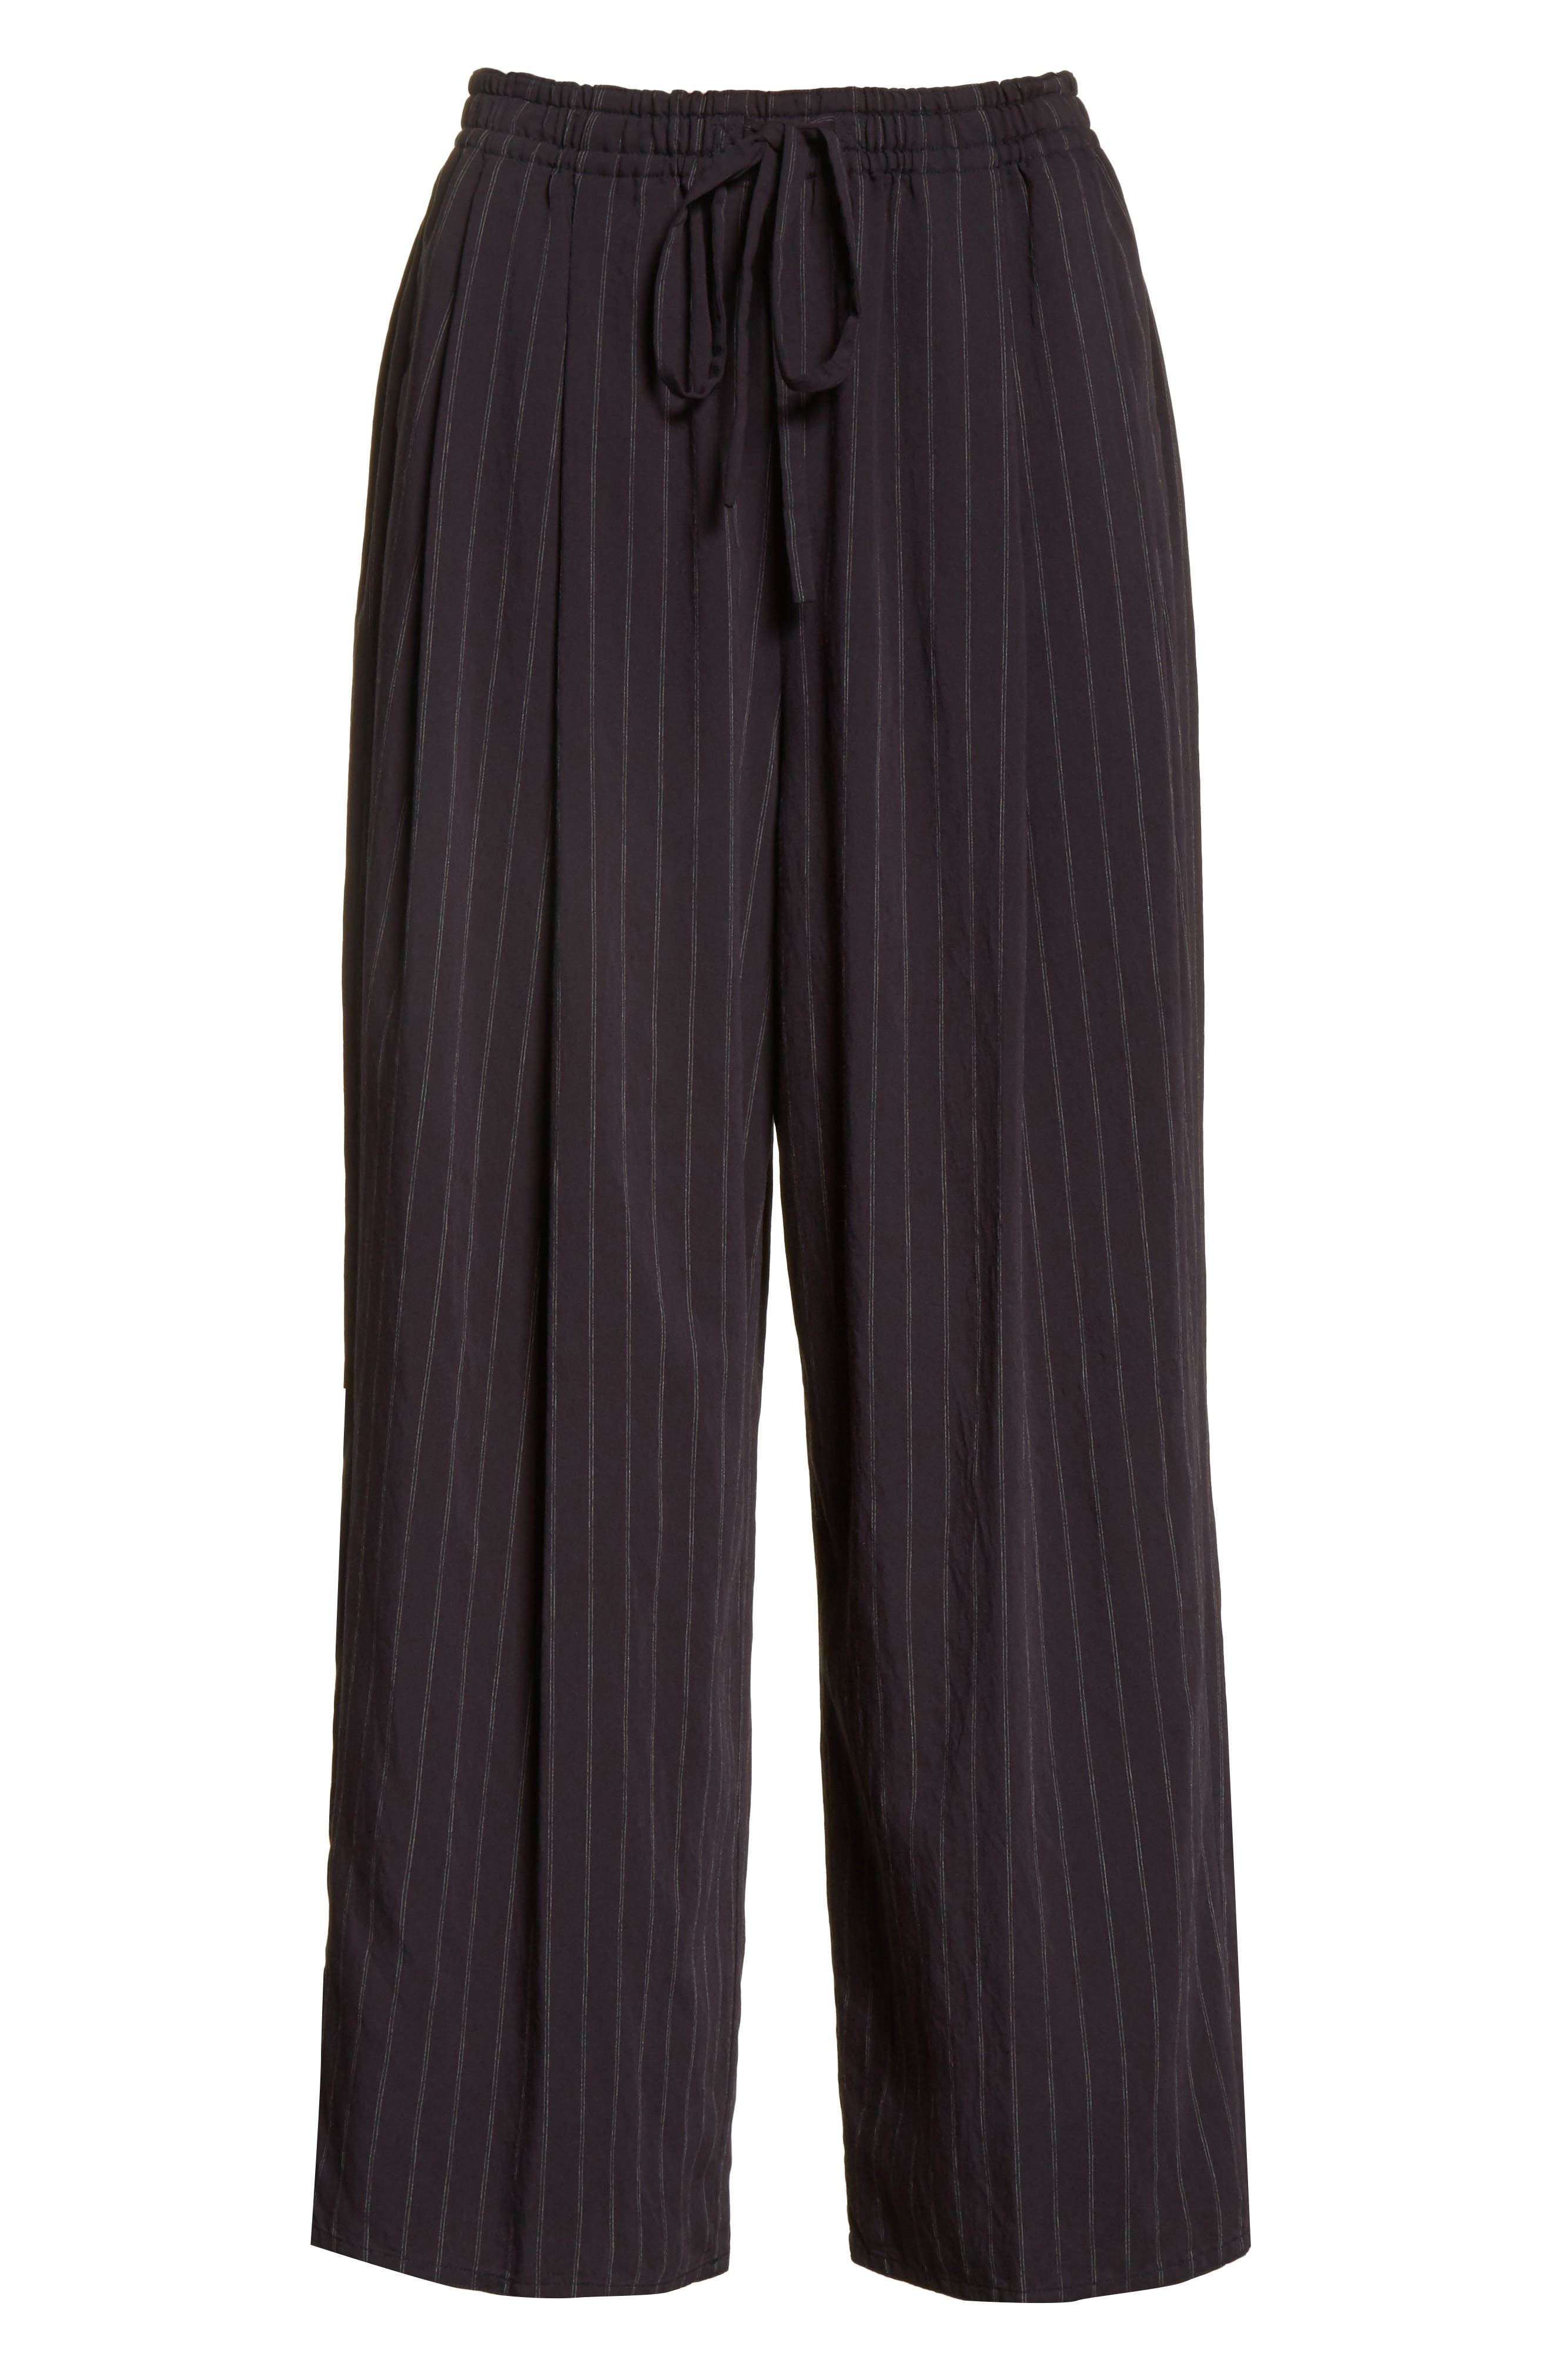 Striped Drawstring Cropped Pants,                             Alternate thumbnail 6, color,                             403